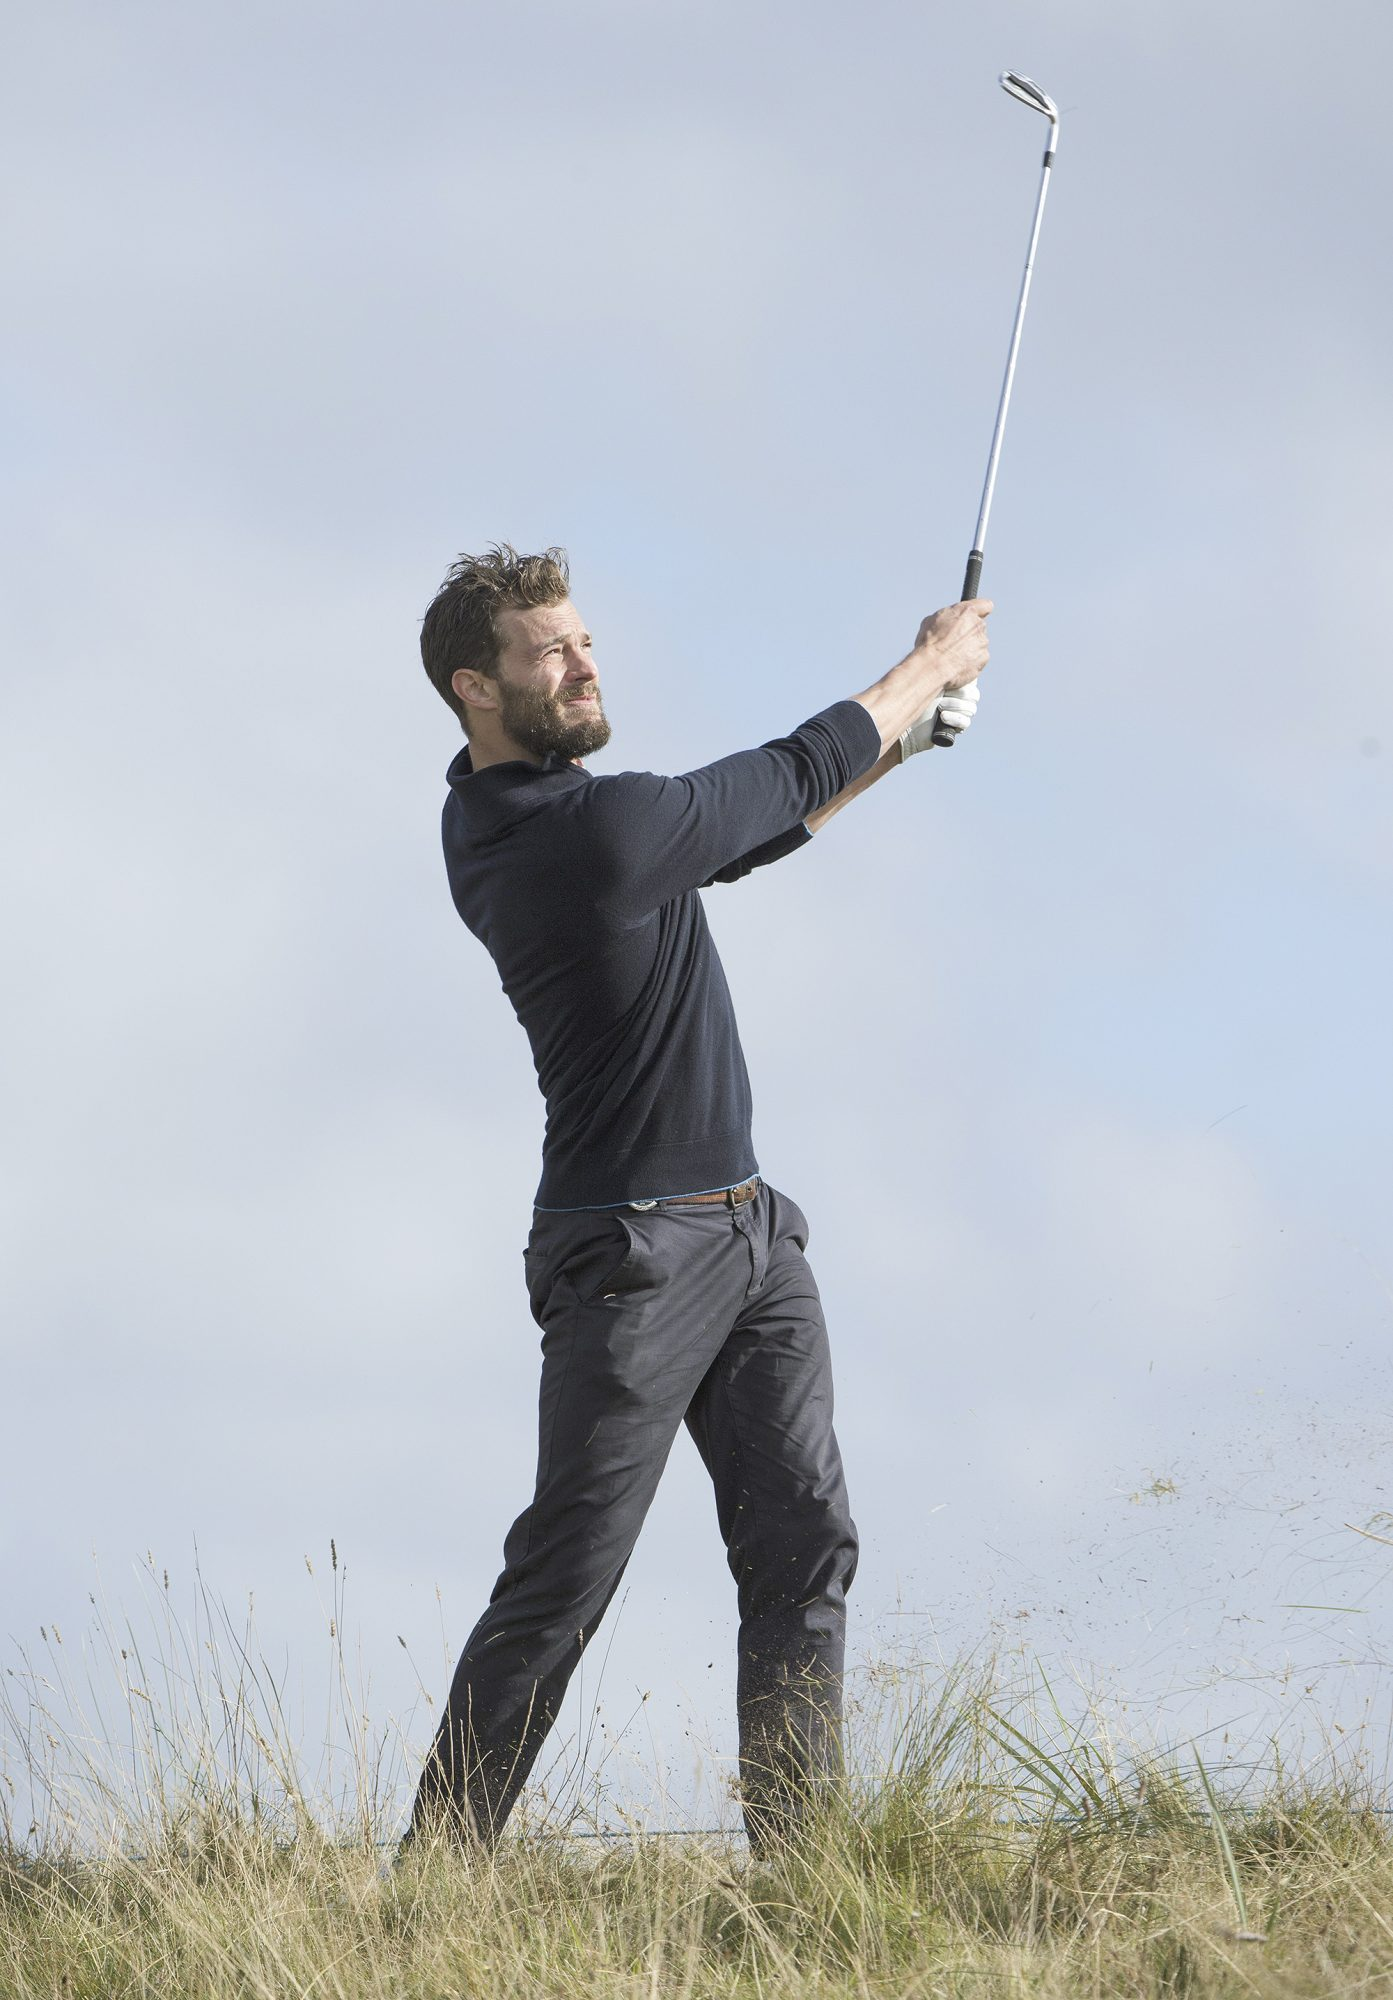 Alfred Dunhill Links Golf Championship, Day One, Carnoustie Scotland, UK - 06 Oct 2016